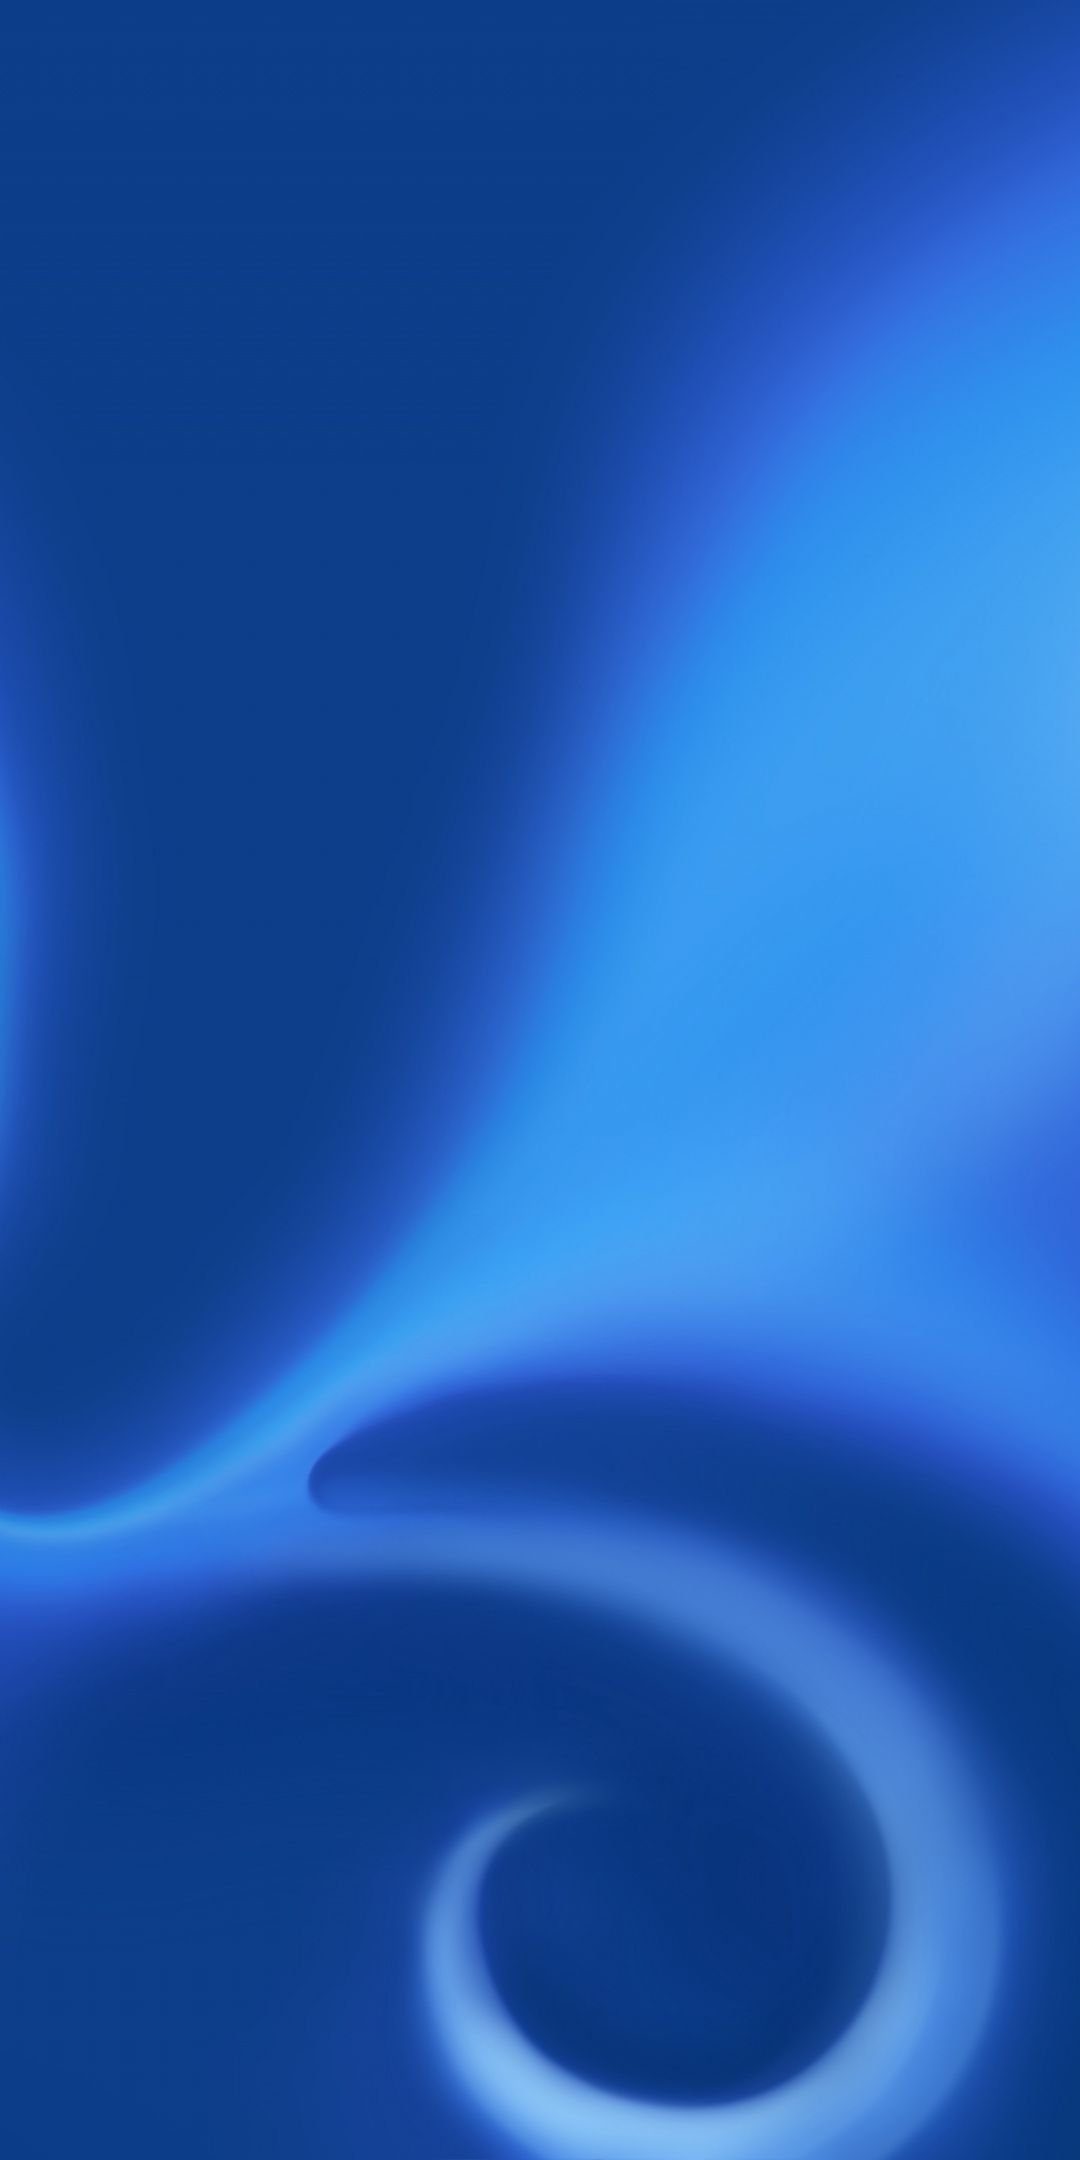 Waves Particle Blue Abstract 1080x2160 Wallpaper T